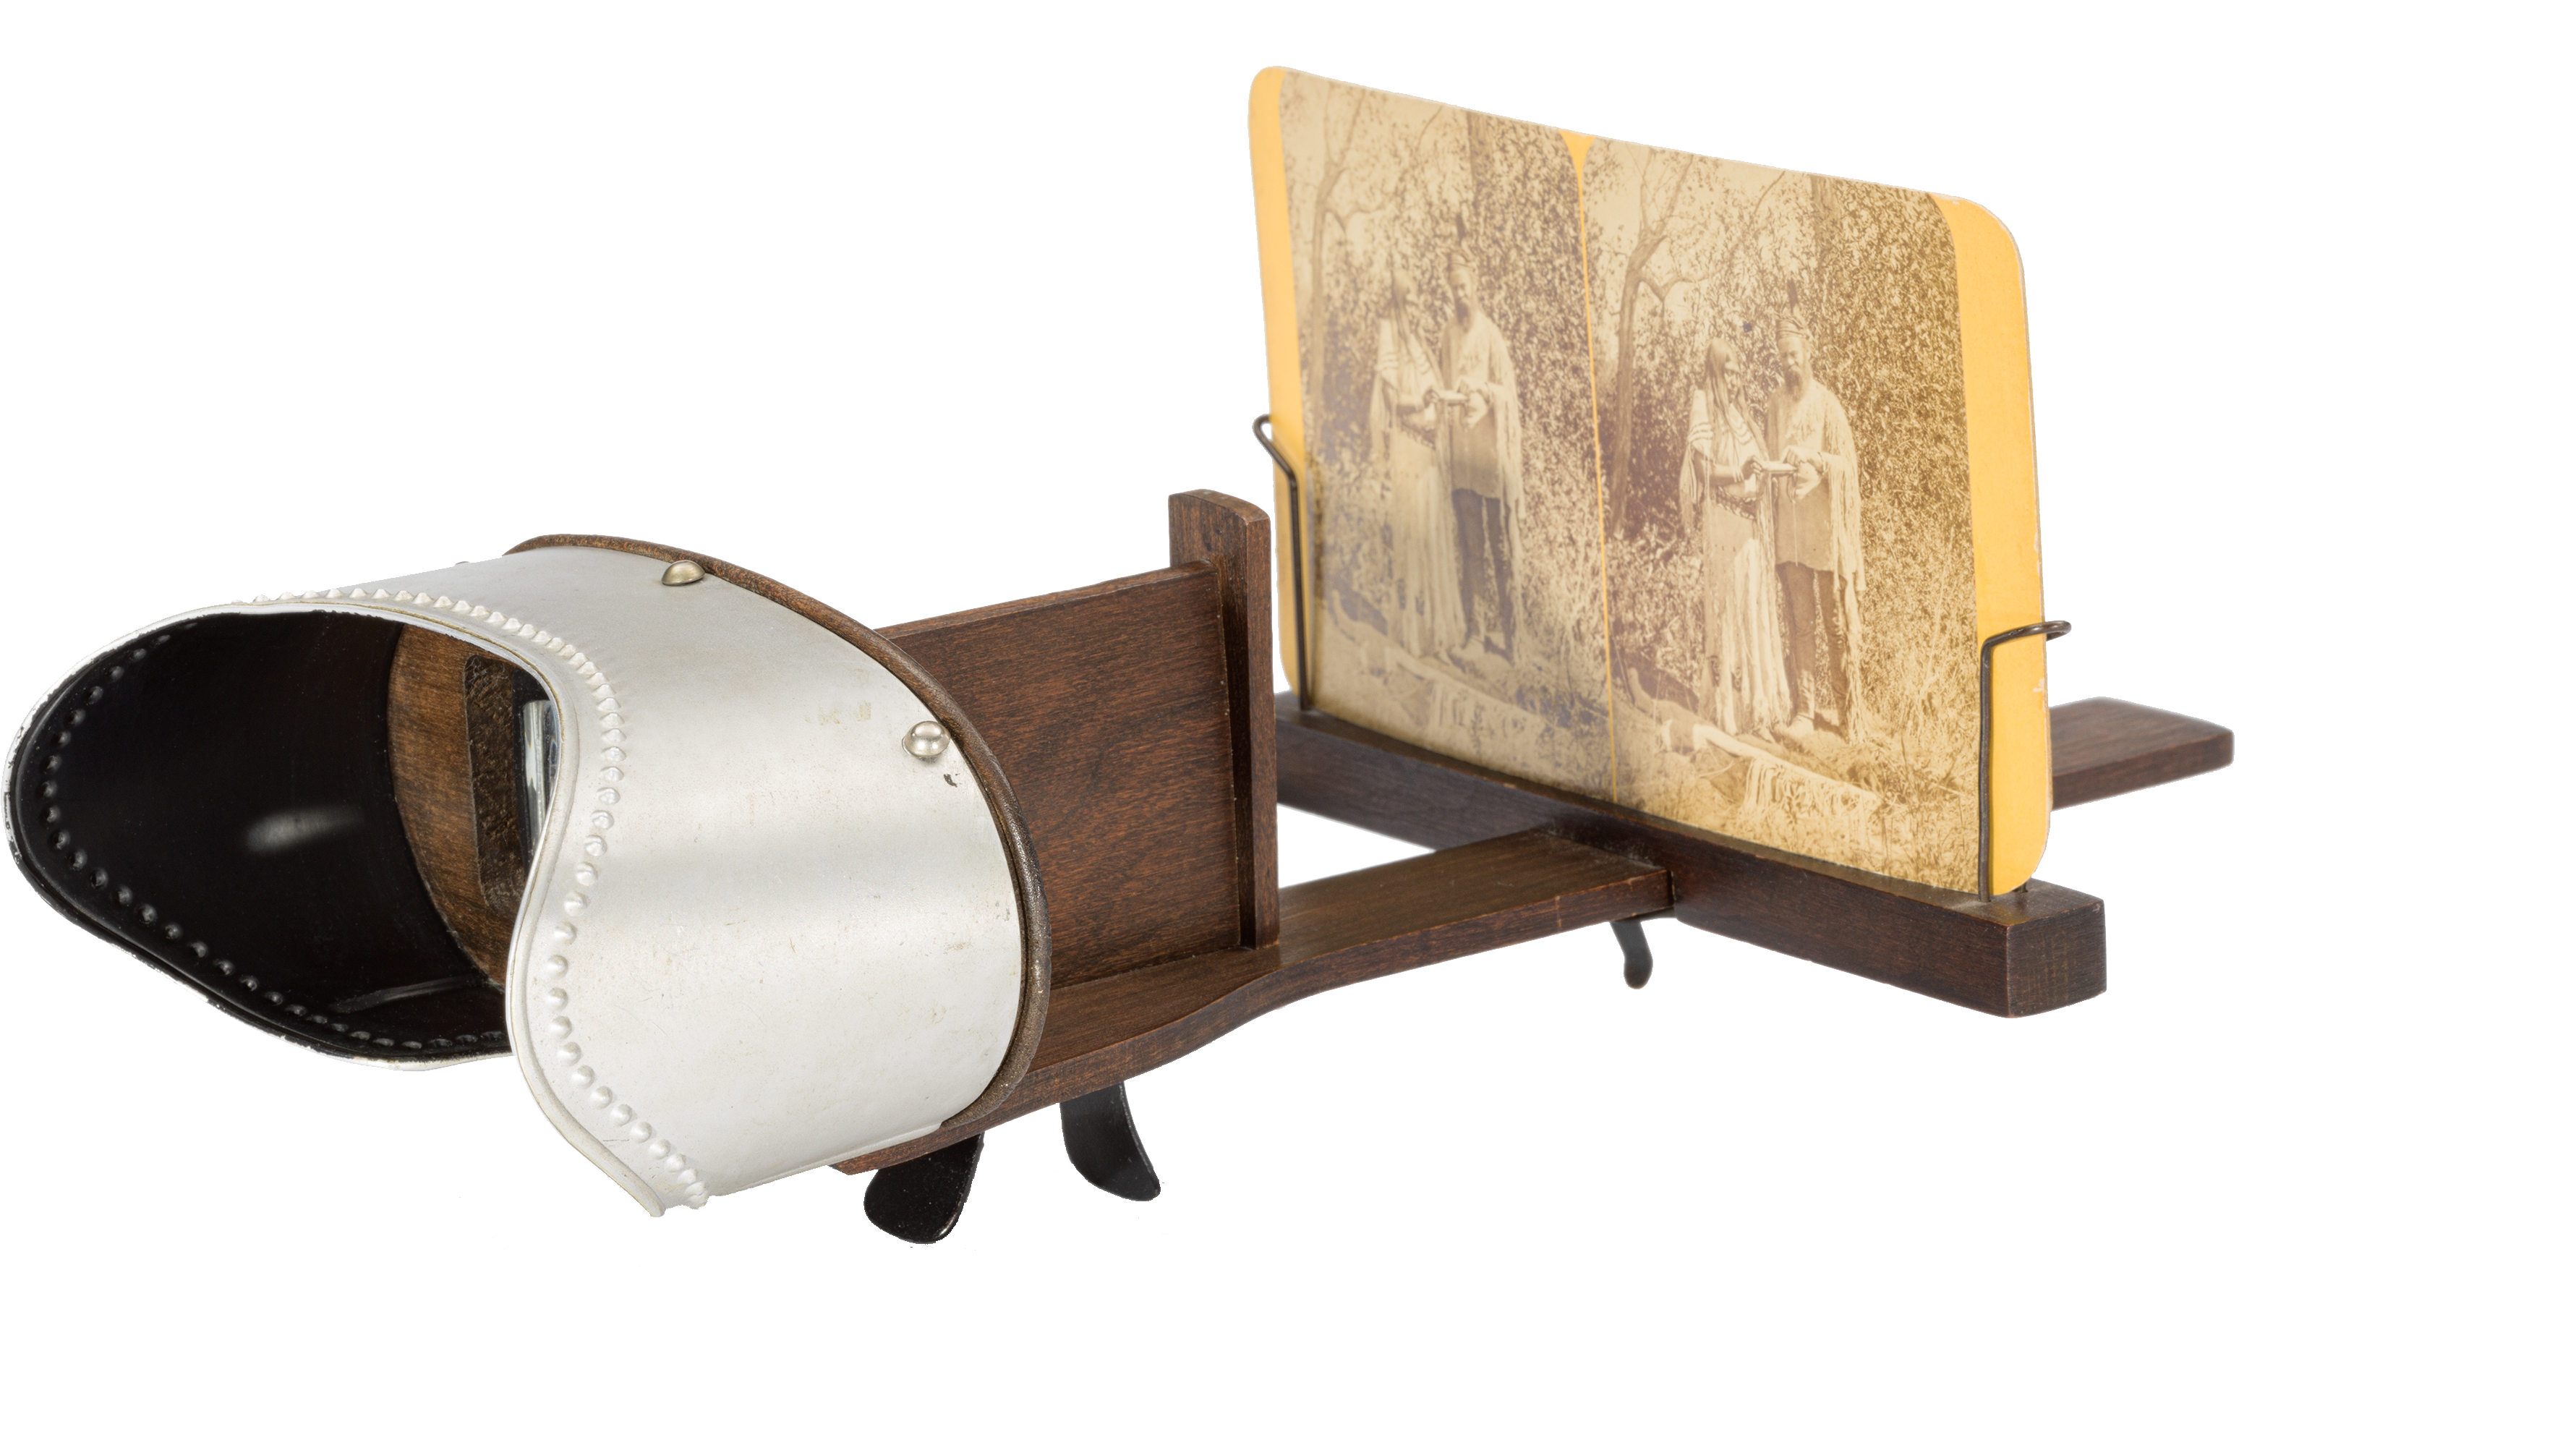 a wooden photograph view finder with an old photo in grasp